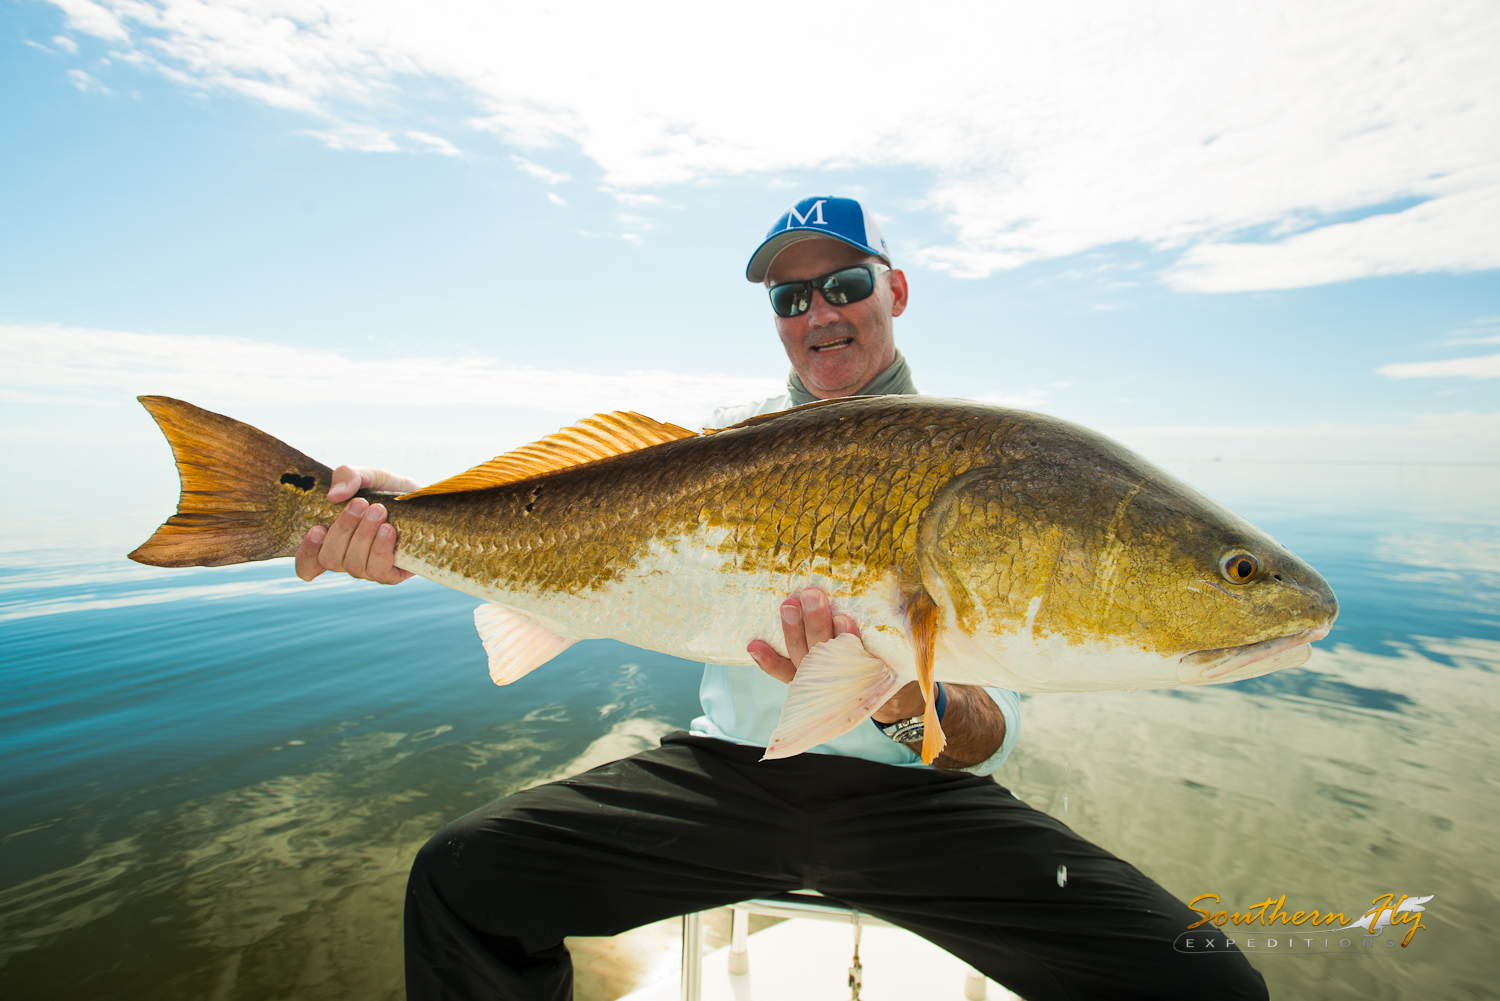 fly fishing trips - guys trip to new orleans things to do